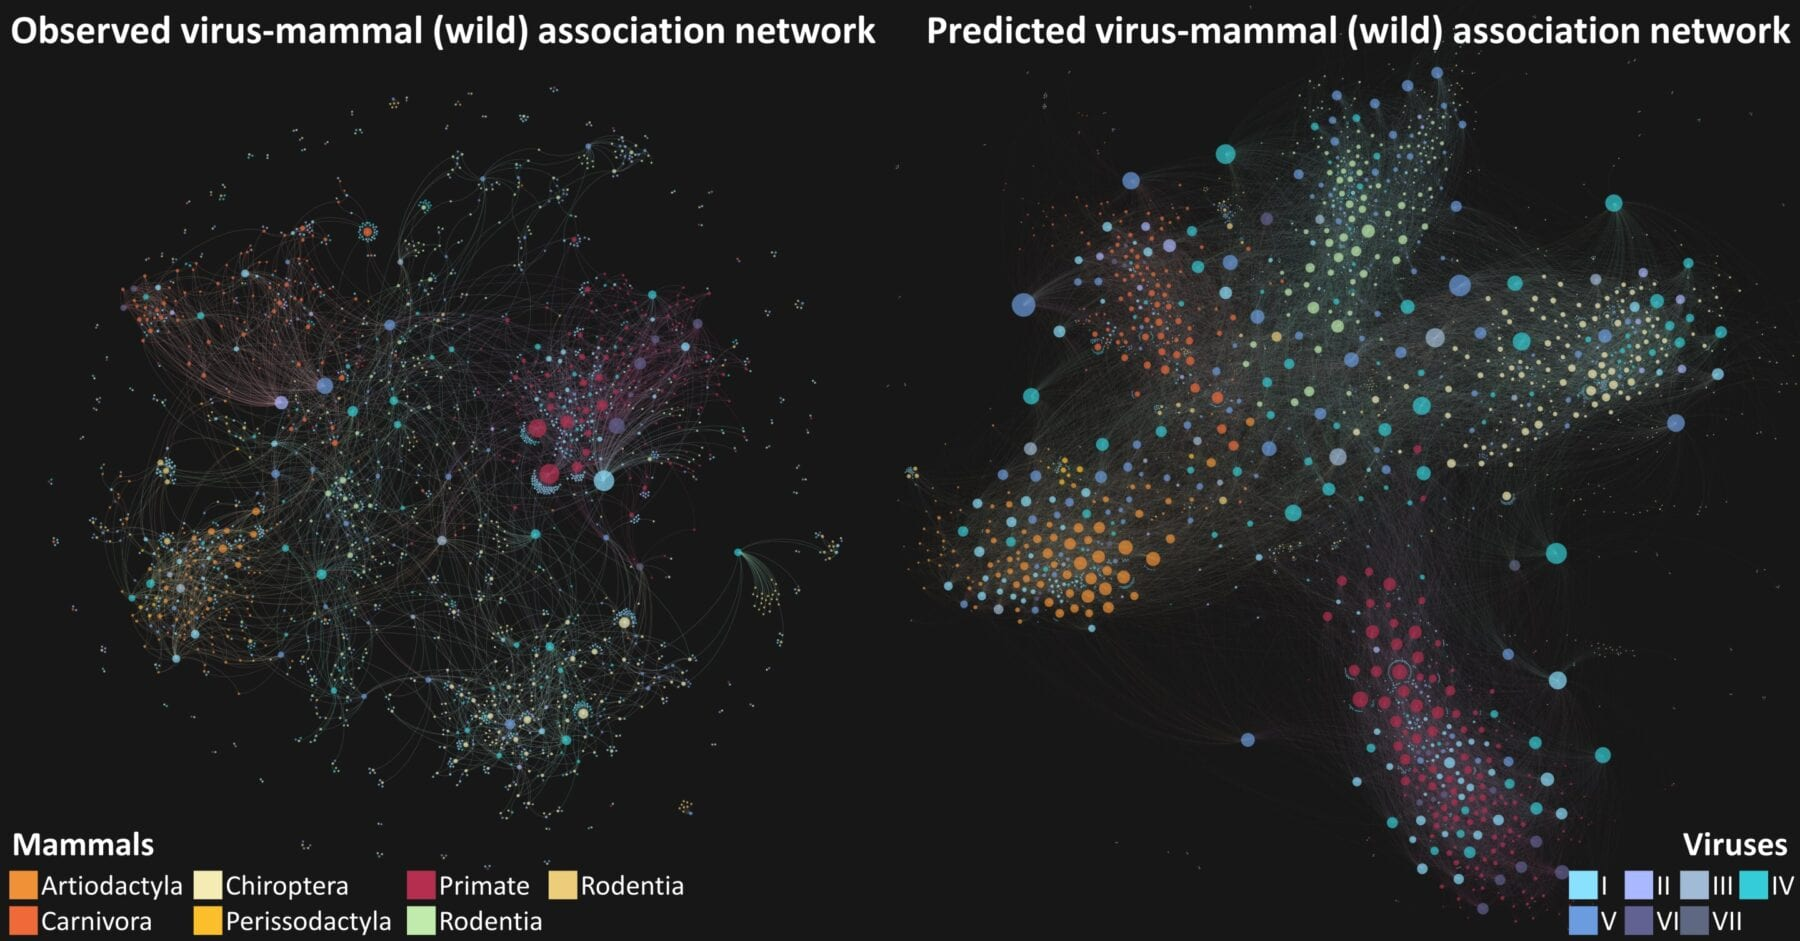 Abstract representation of networks of (1) observed and (2) predicted associations between wild and semi-domesticated mammalian hosts and known virus species. (credit: Dr Maya Wardeh)